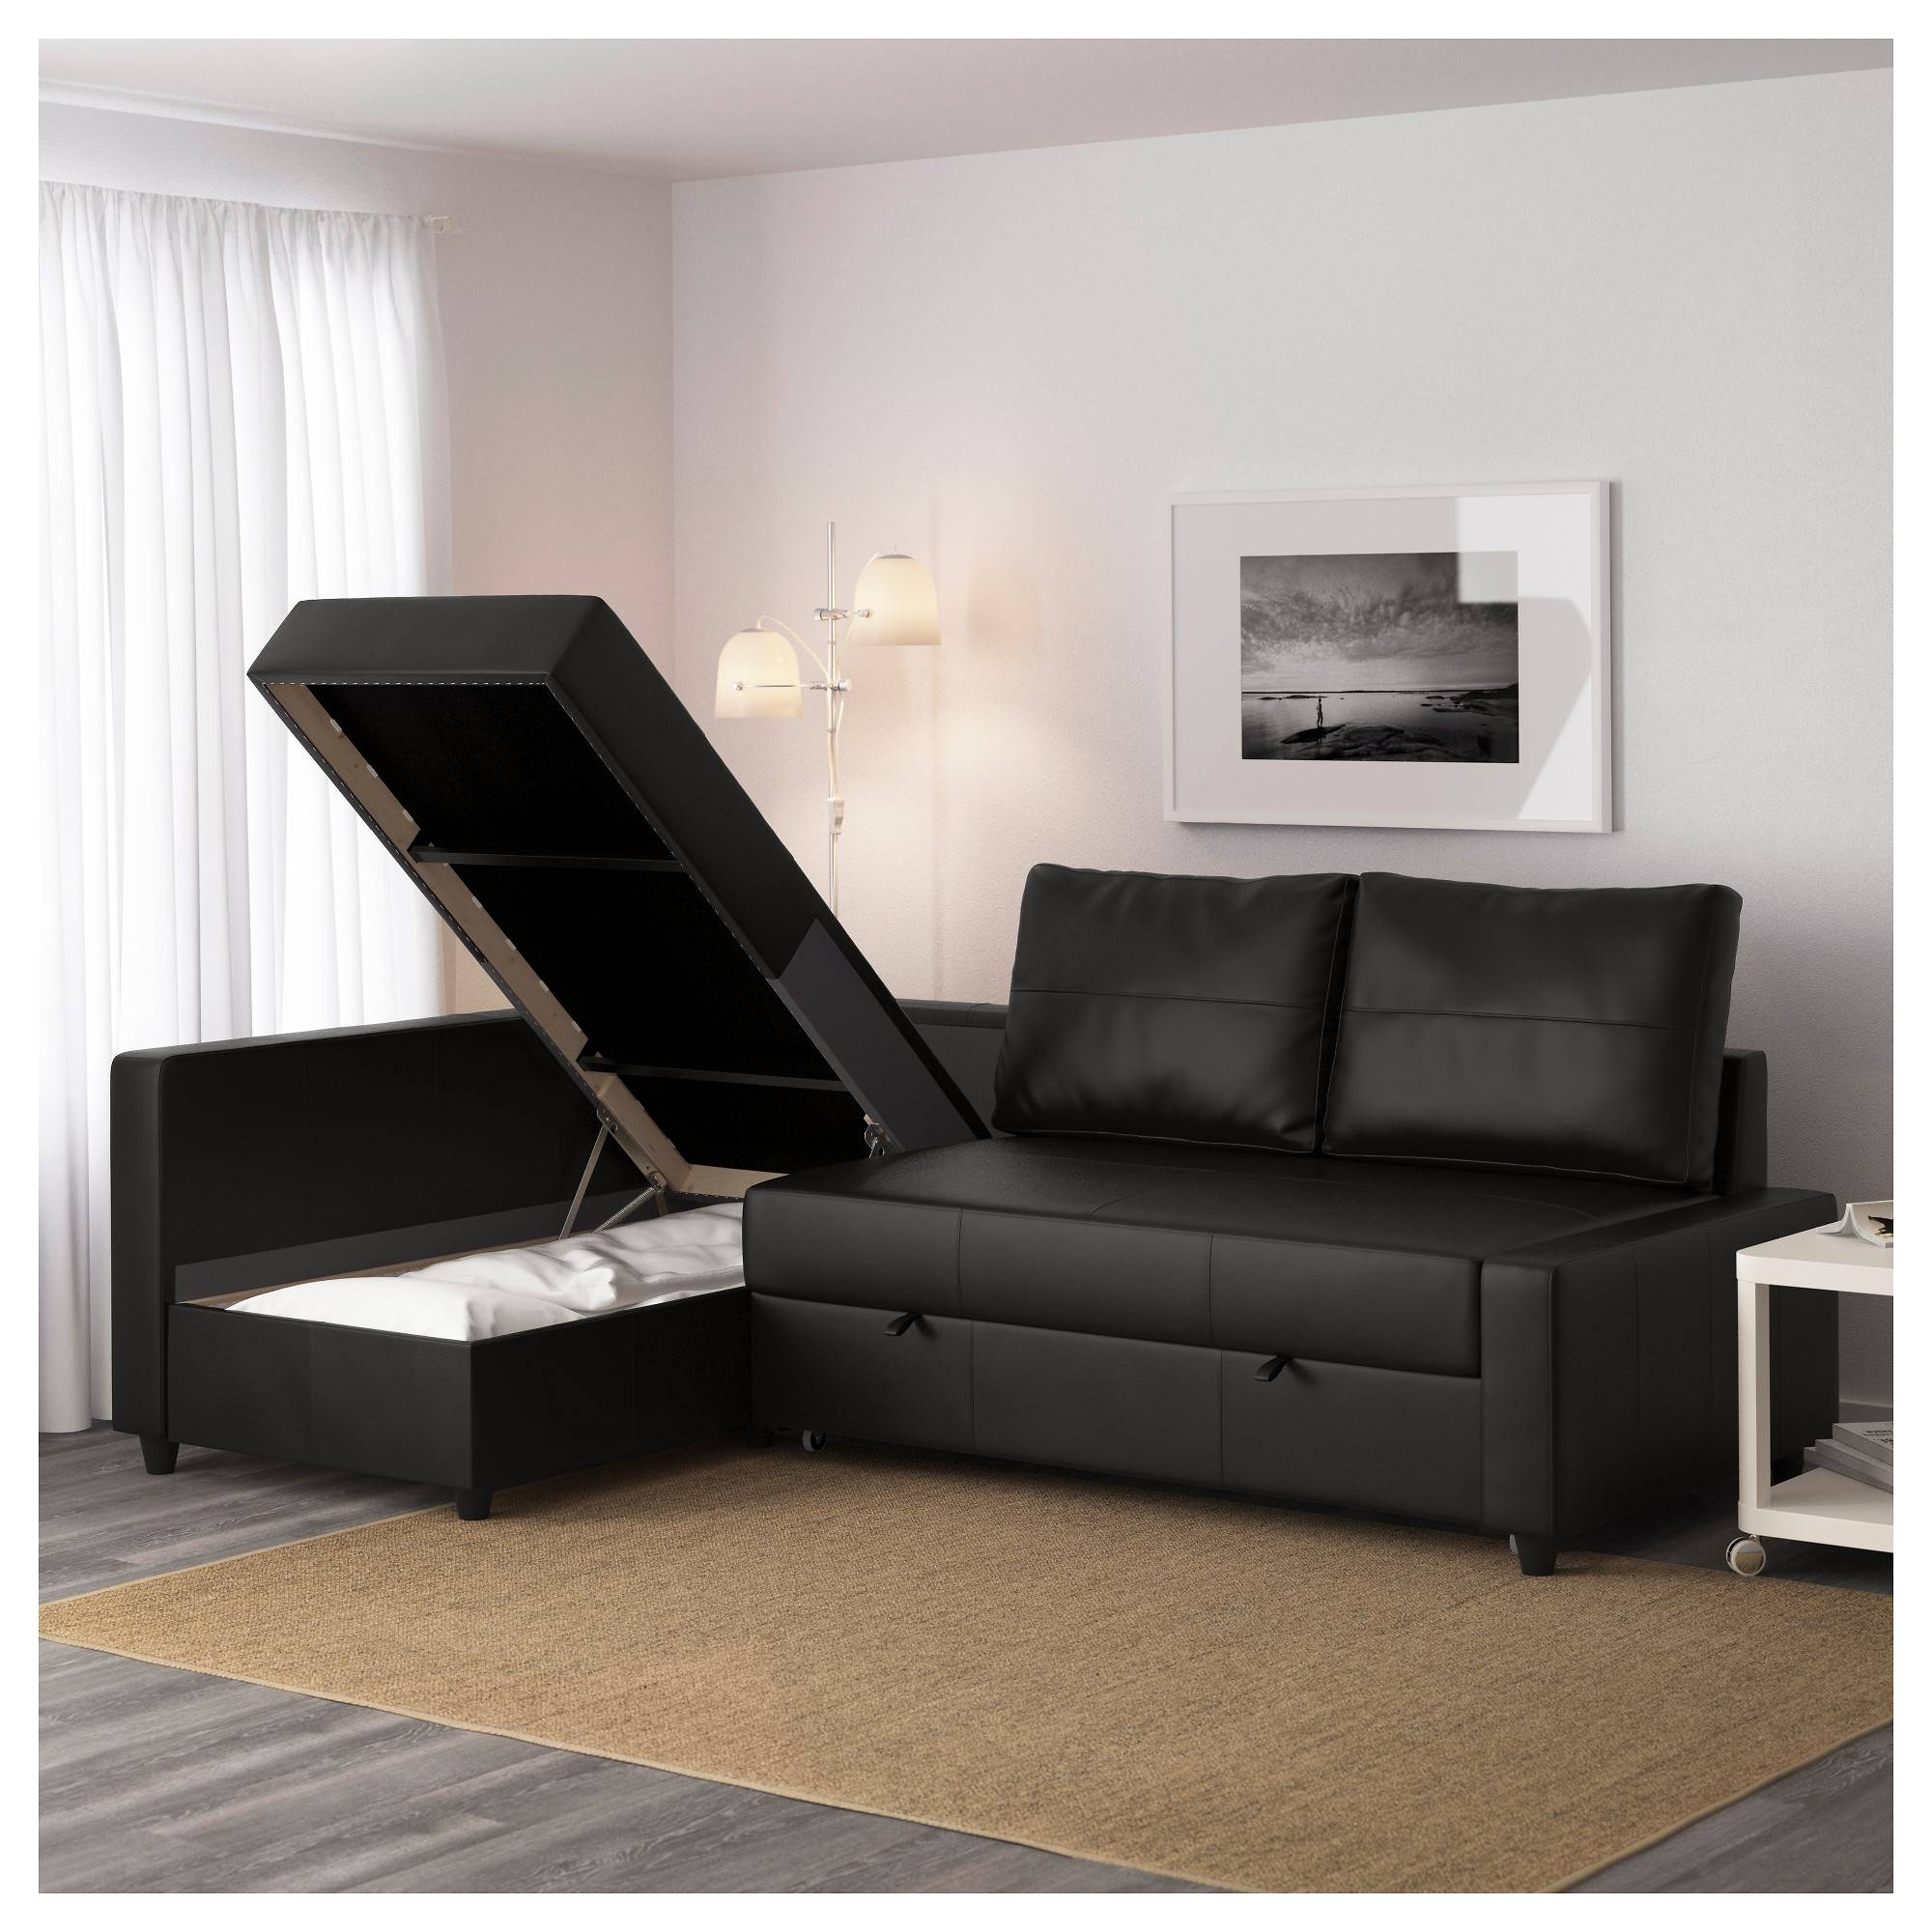 Sofas: Classic Meets Contemporary Chaise Sofa Bed For Ideal Living Within Sectional Sofa Bed With Storage (View 21 of 25)